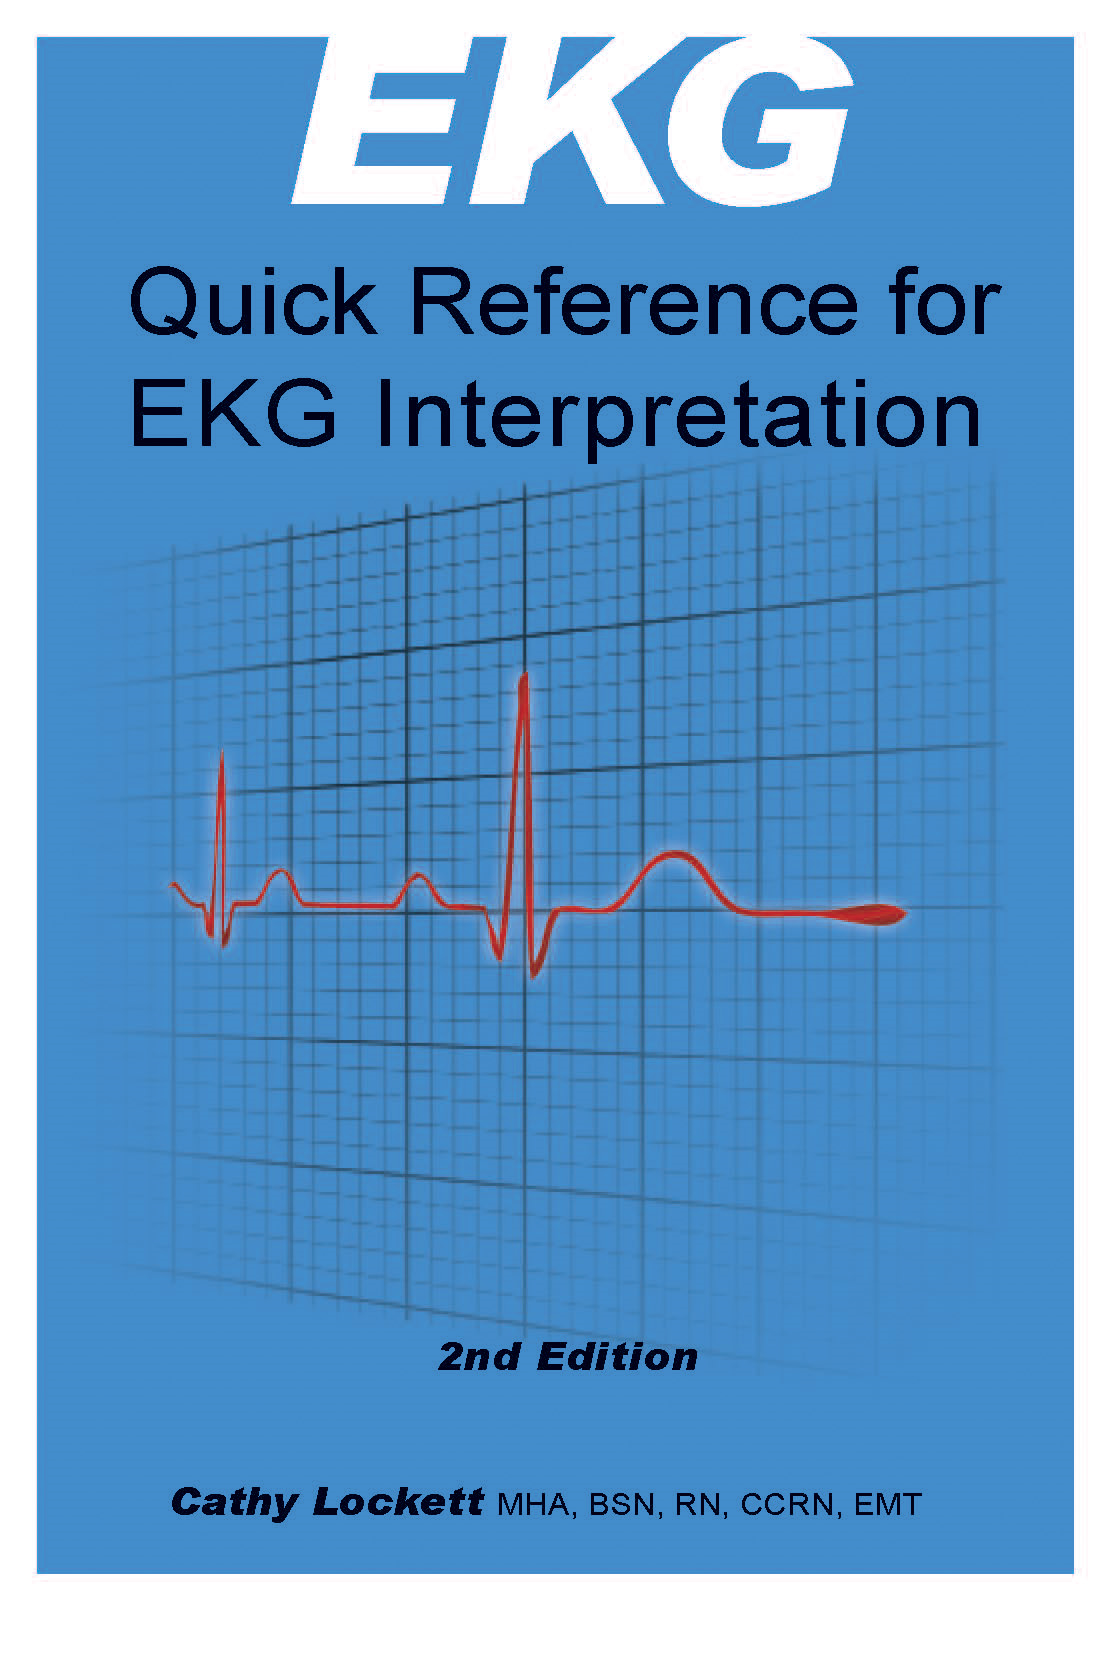 EKG Quick Reference for Interpretation By: Cathy Lockett, RN, MHA, BSN, CCRN, EMT